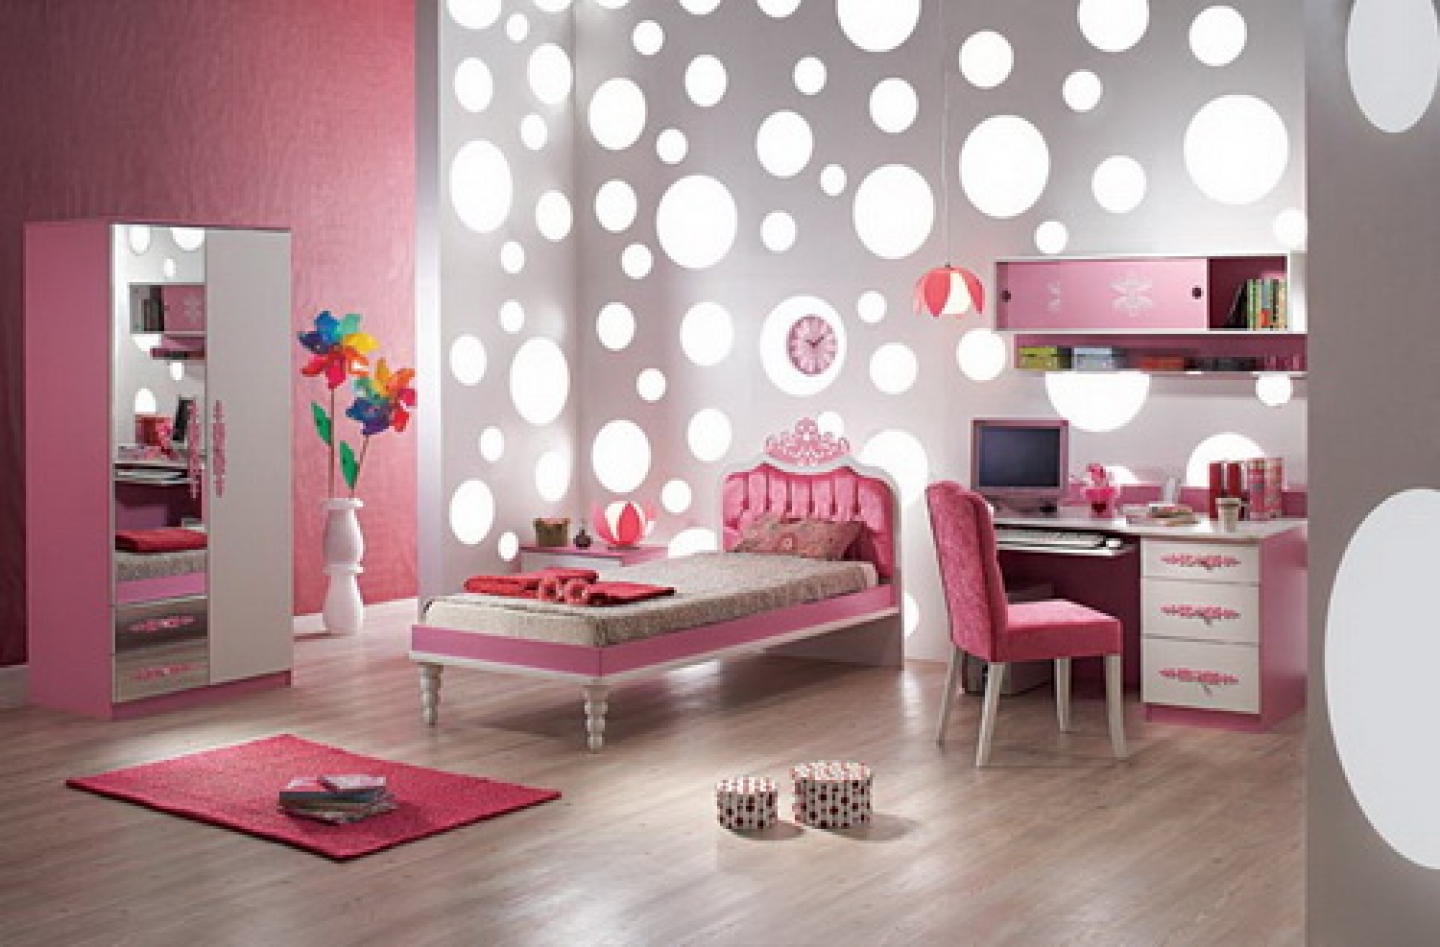 Girls bedroom wallpaper ideas modern girls bedroom wallpaper ideas 1440x947